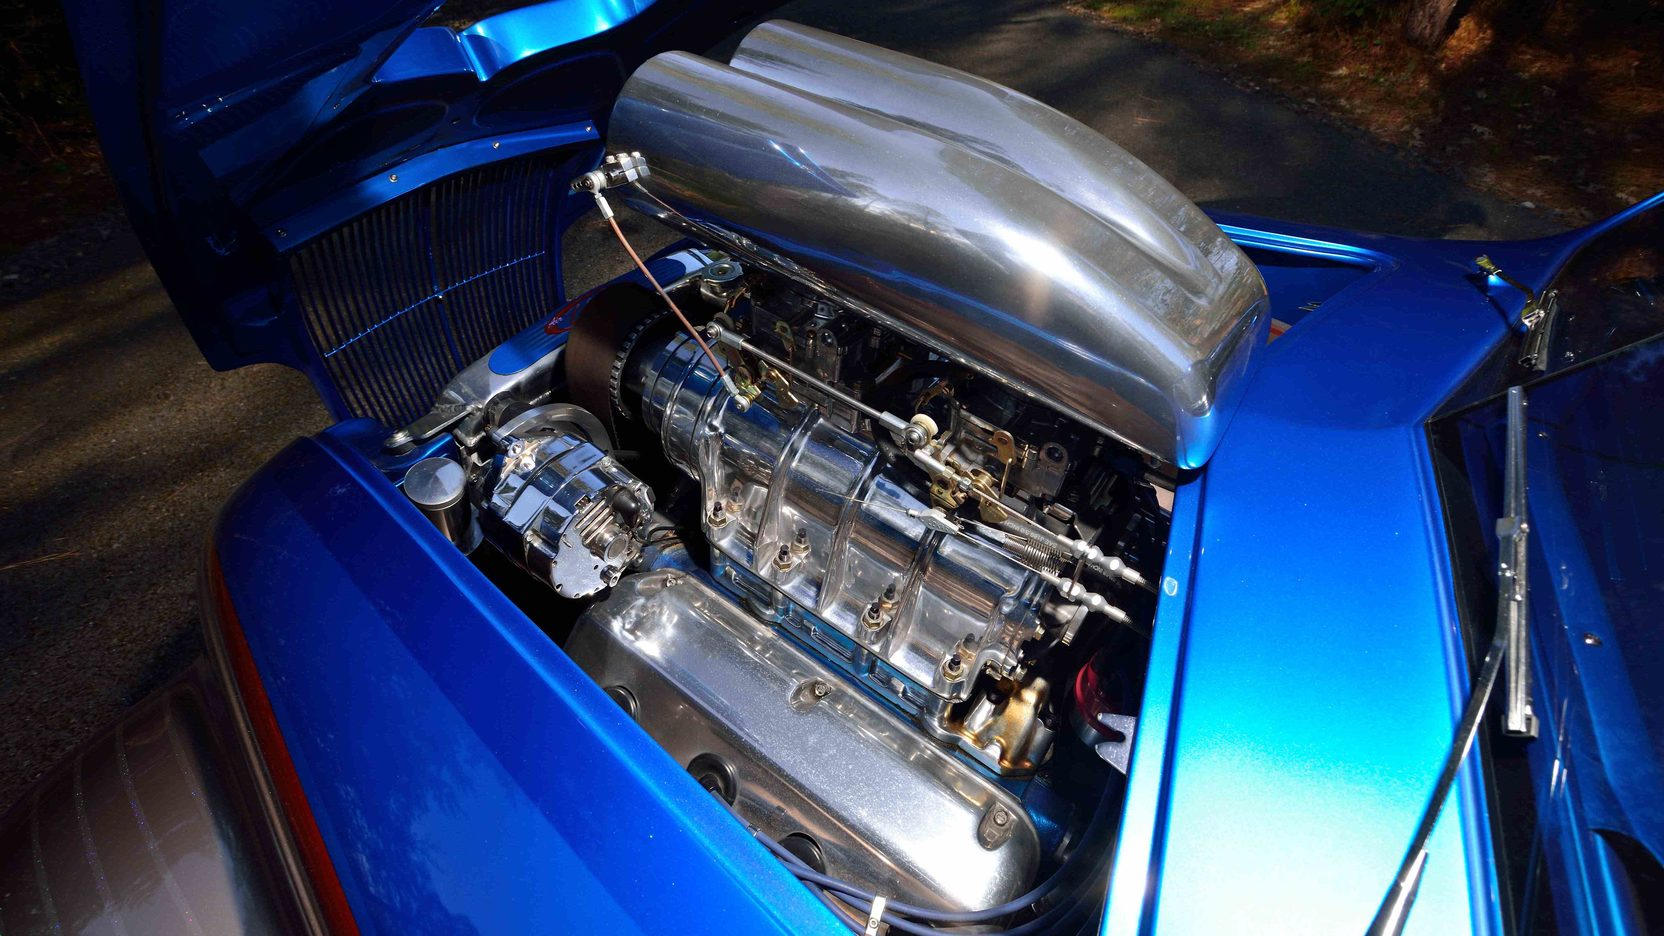 De Soto Airflow engine close-up